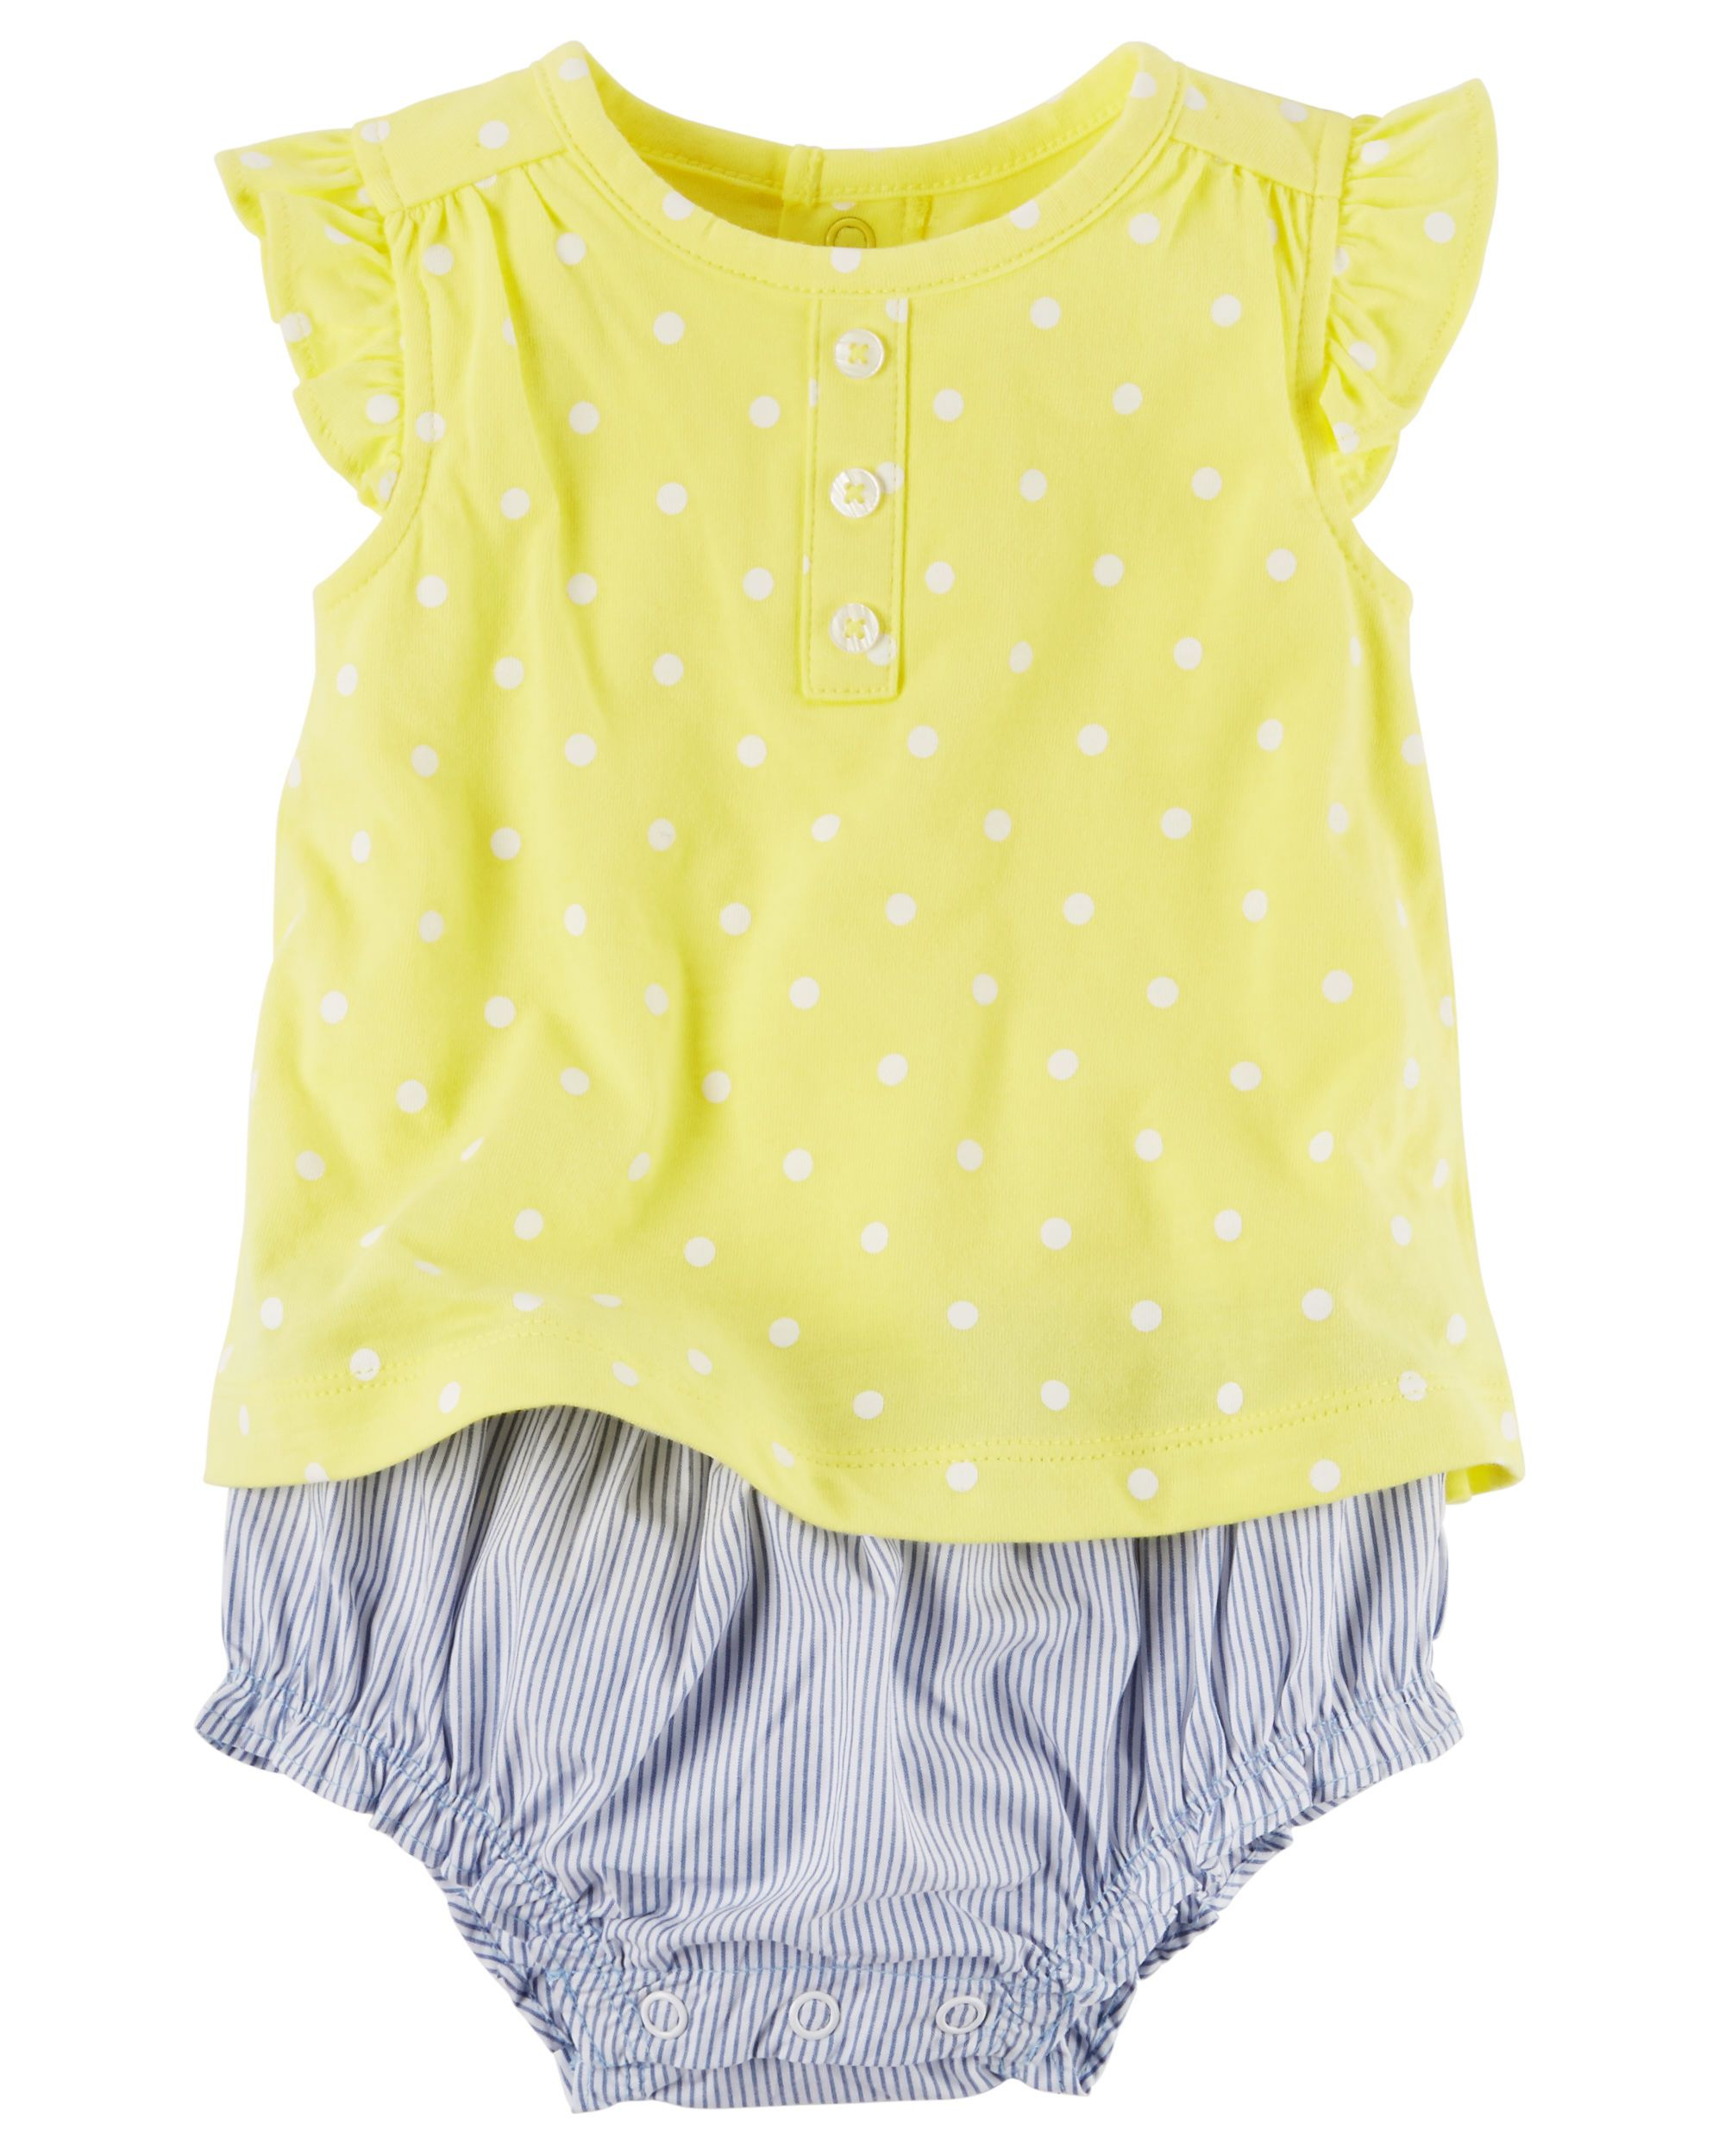 Layered Look Polka Dot Romper